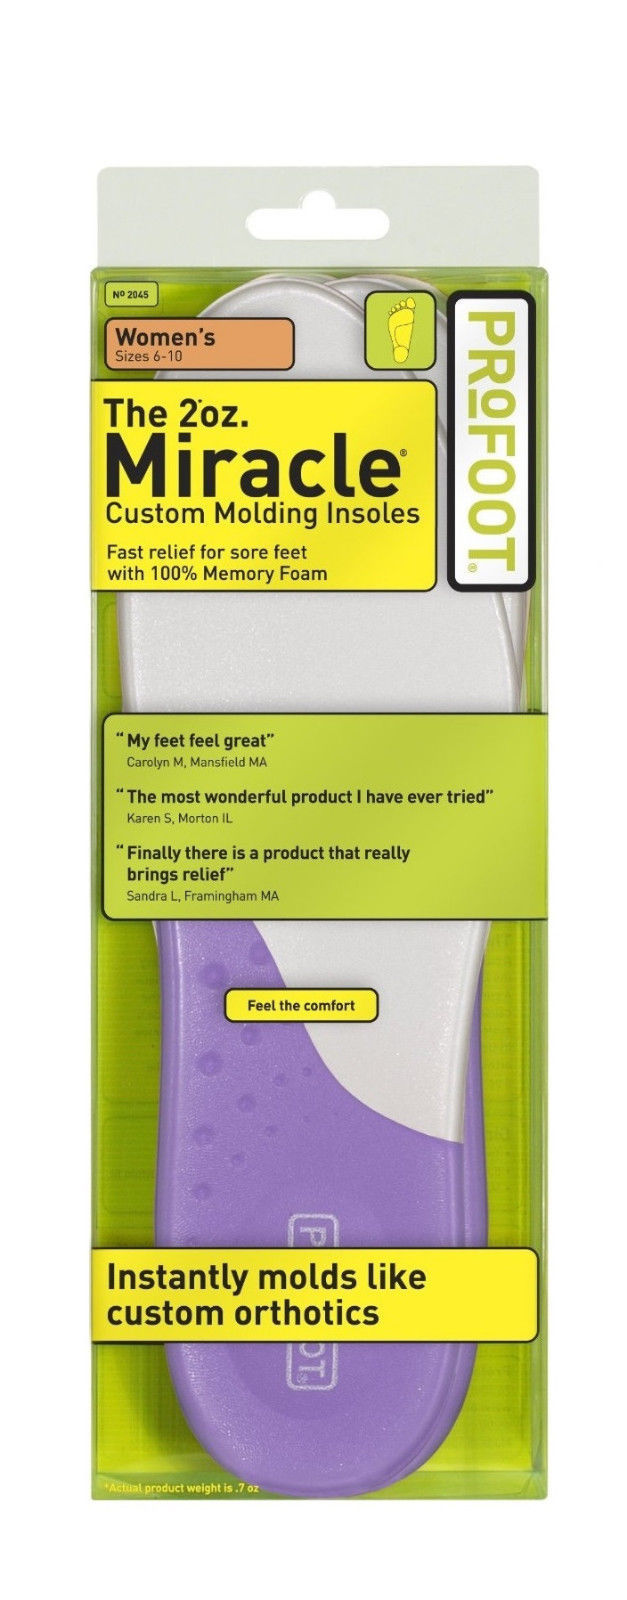 Profoot Care Miracle Custom Molding Insoles Women's 6-10 - 1 Pair - 2 Oz